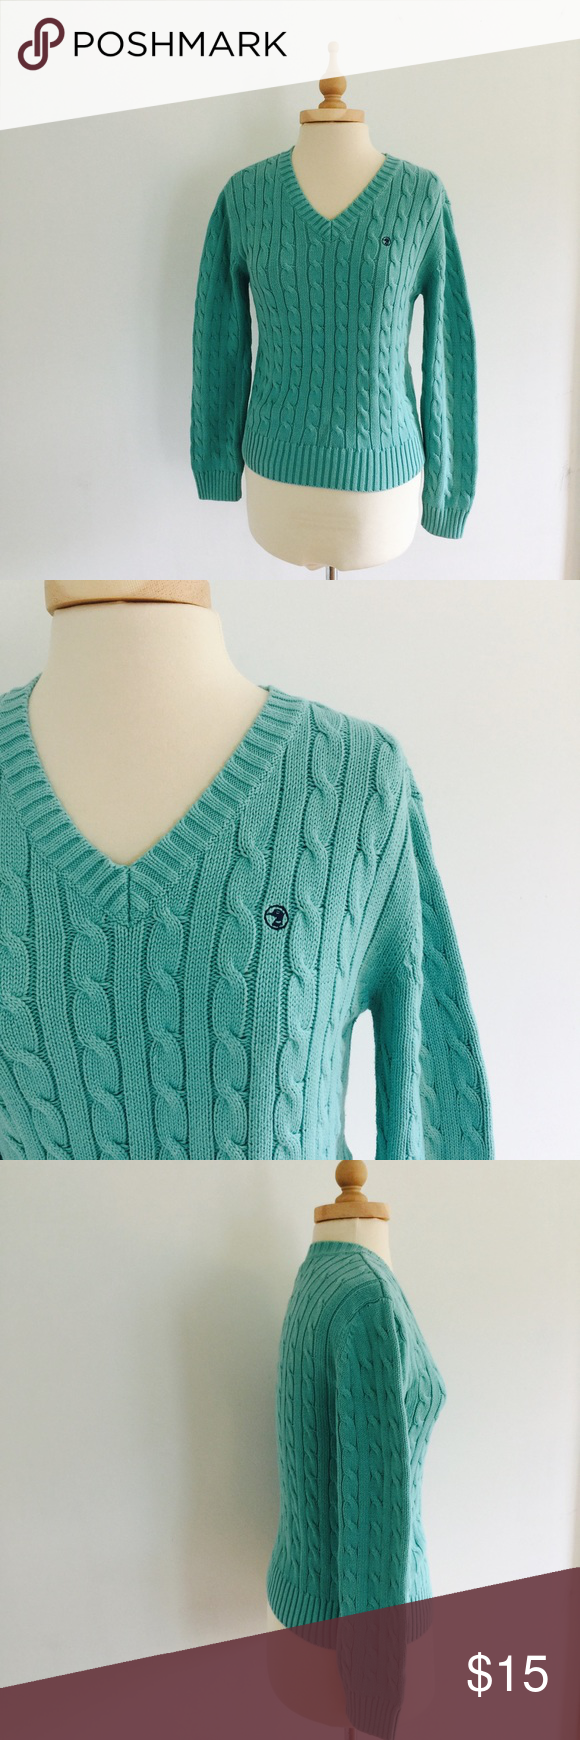 Duck Head Teal blue vneck cable knit sweater | Cable, Beautiful ...